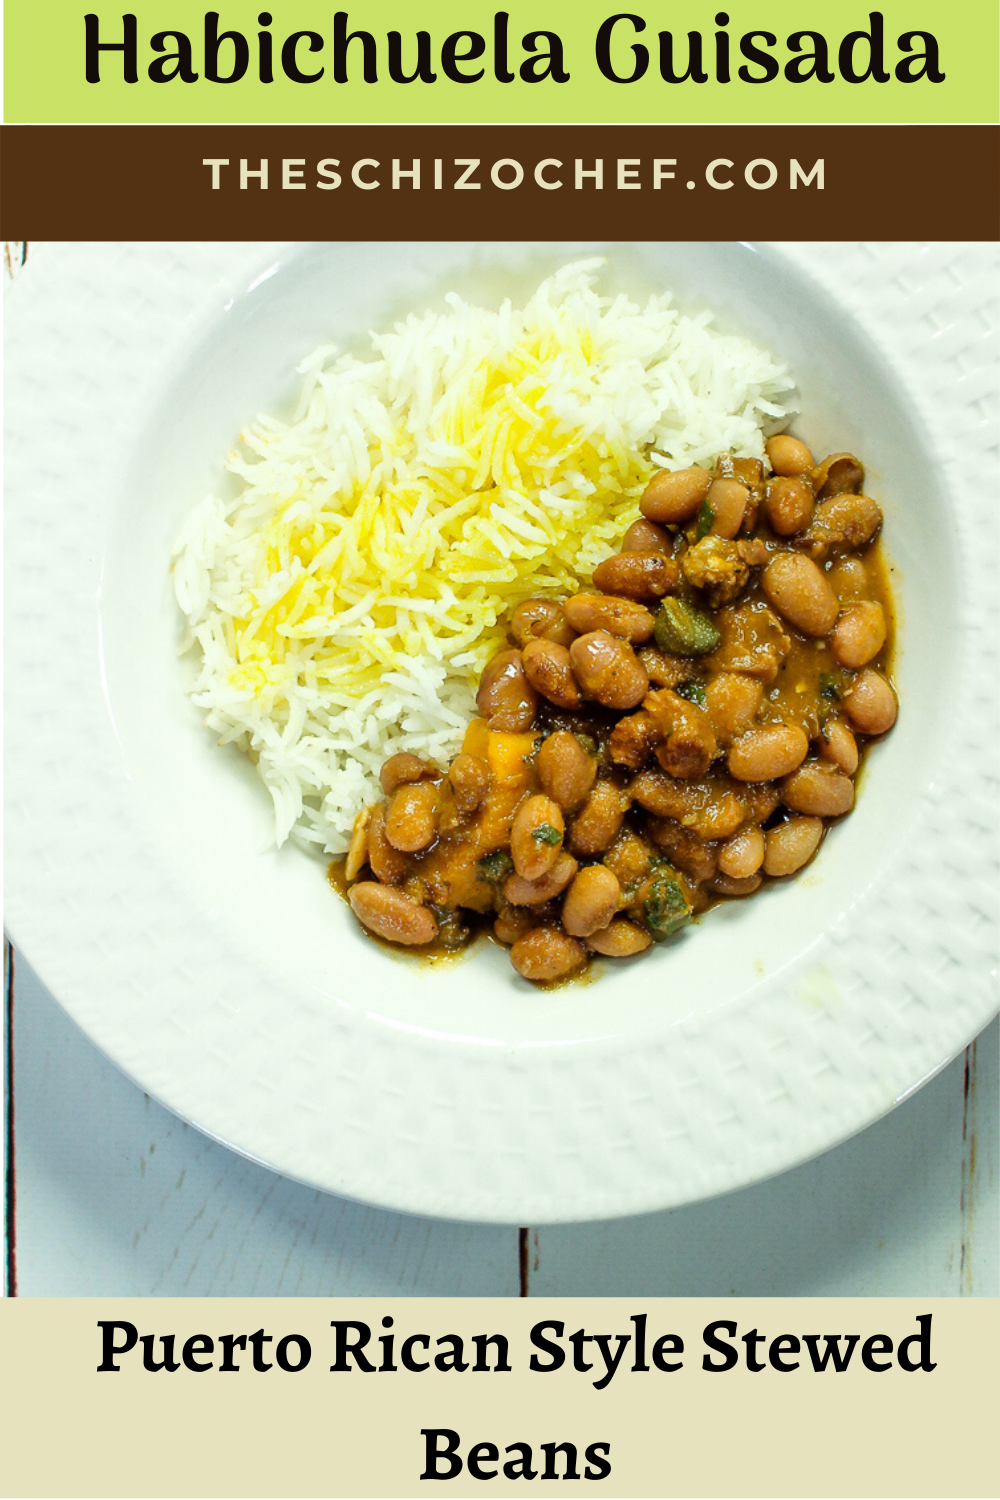 plate of rice and Habichuela Guisada - Puerto Rican Stewed Beans